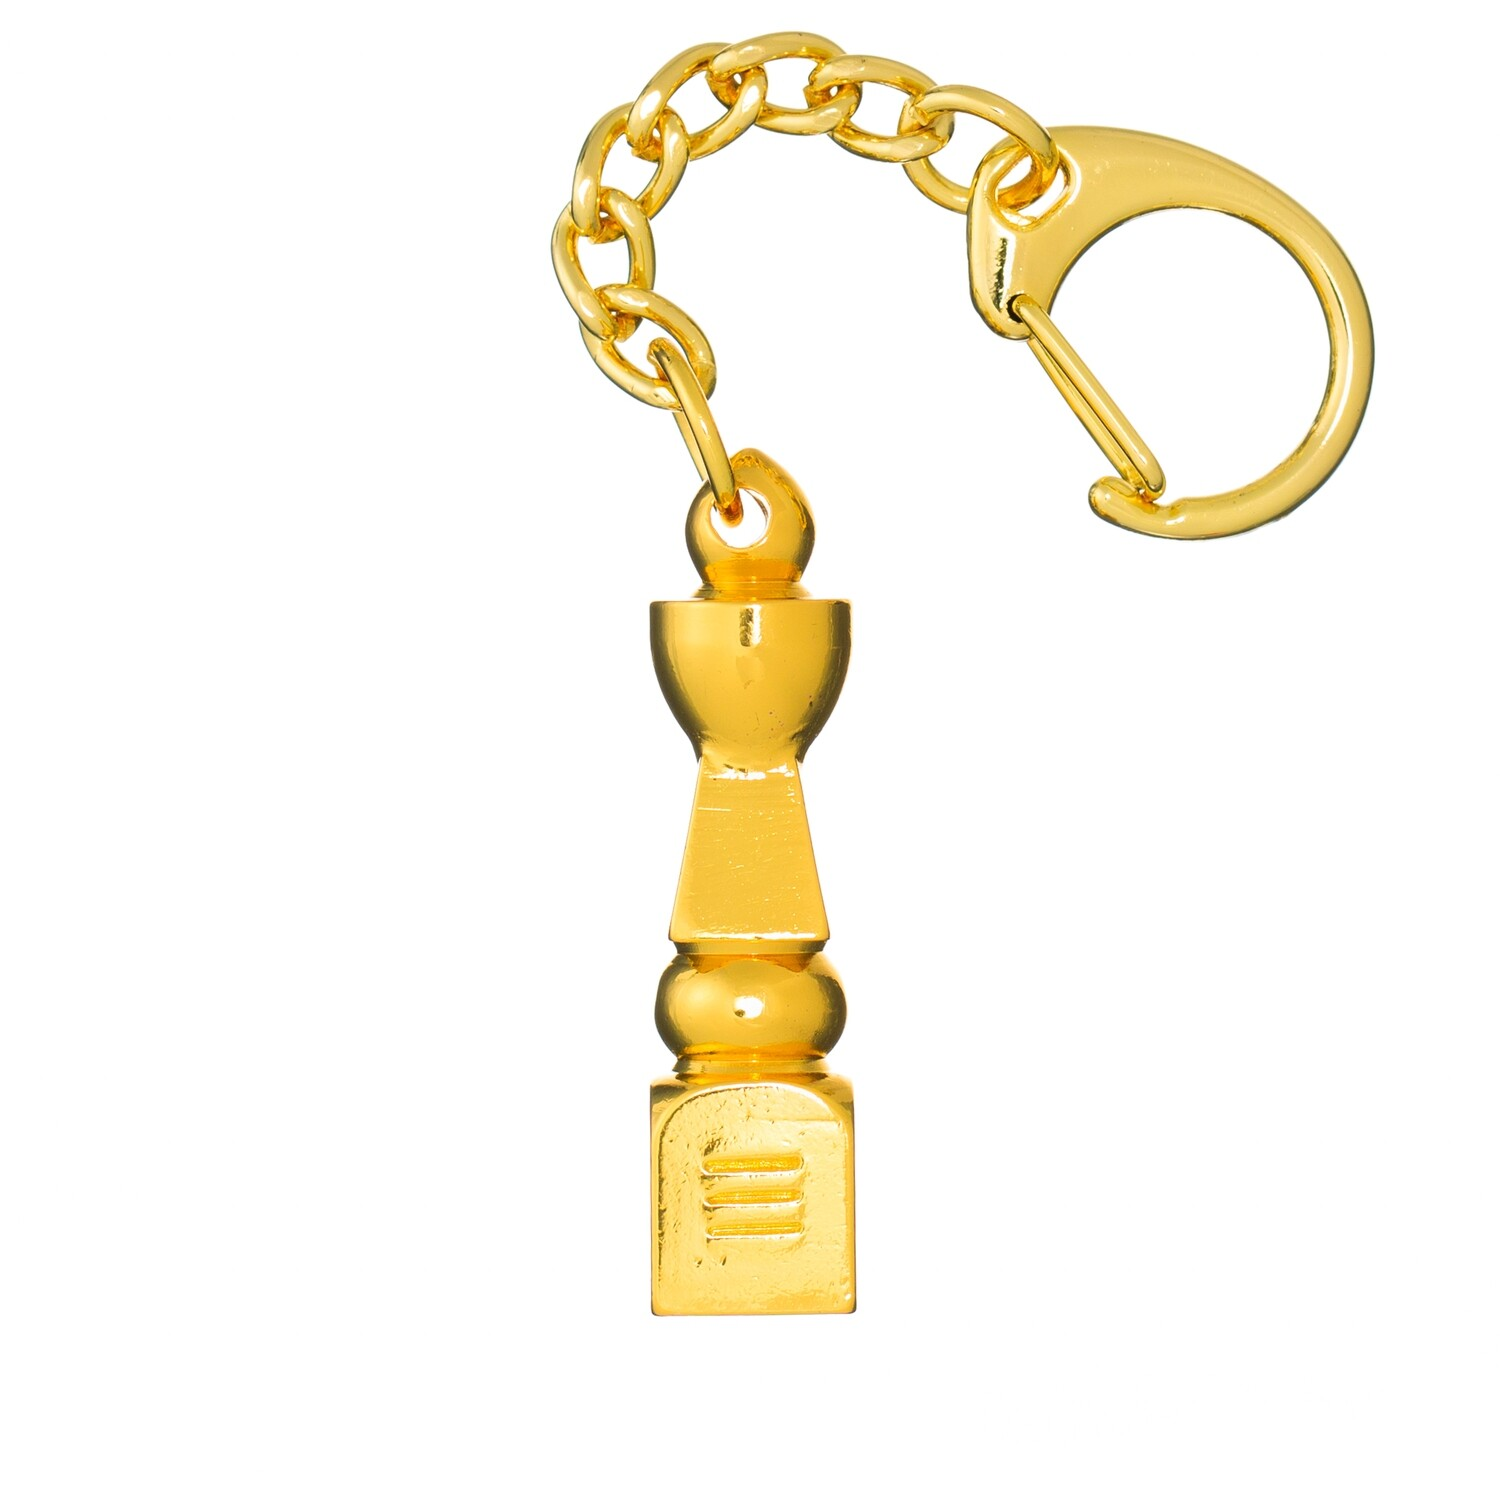 5 element pagoda Charm, Key chain, Amulet